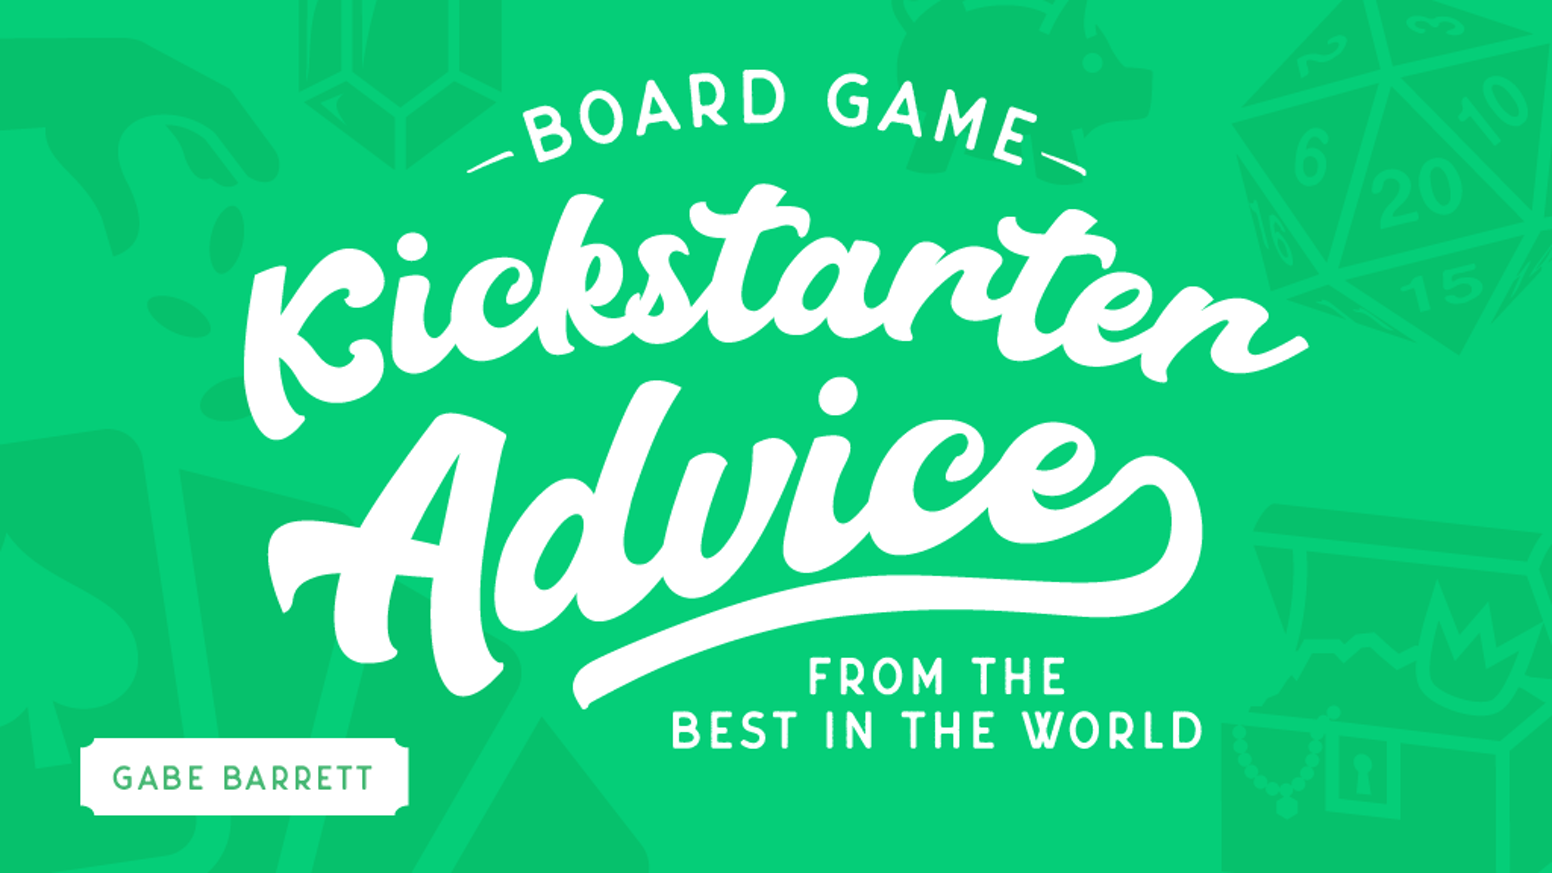 Board Game Kickstarter Advice